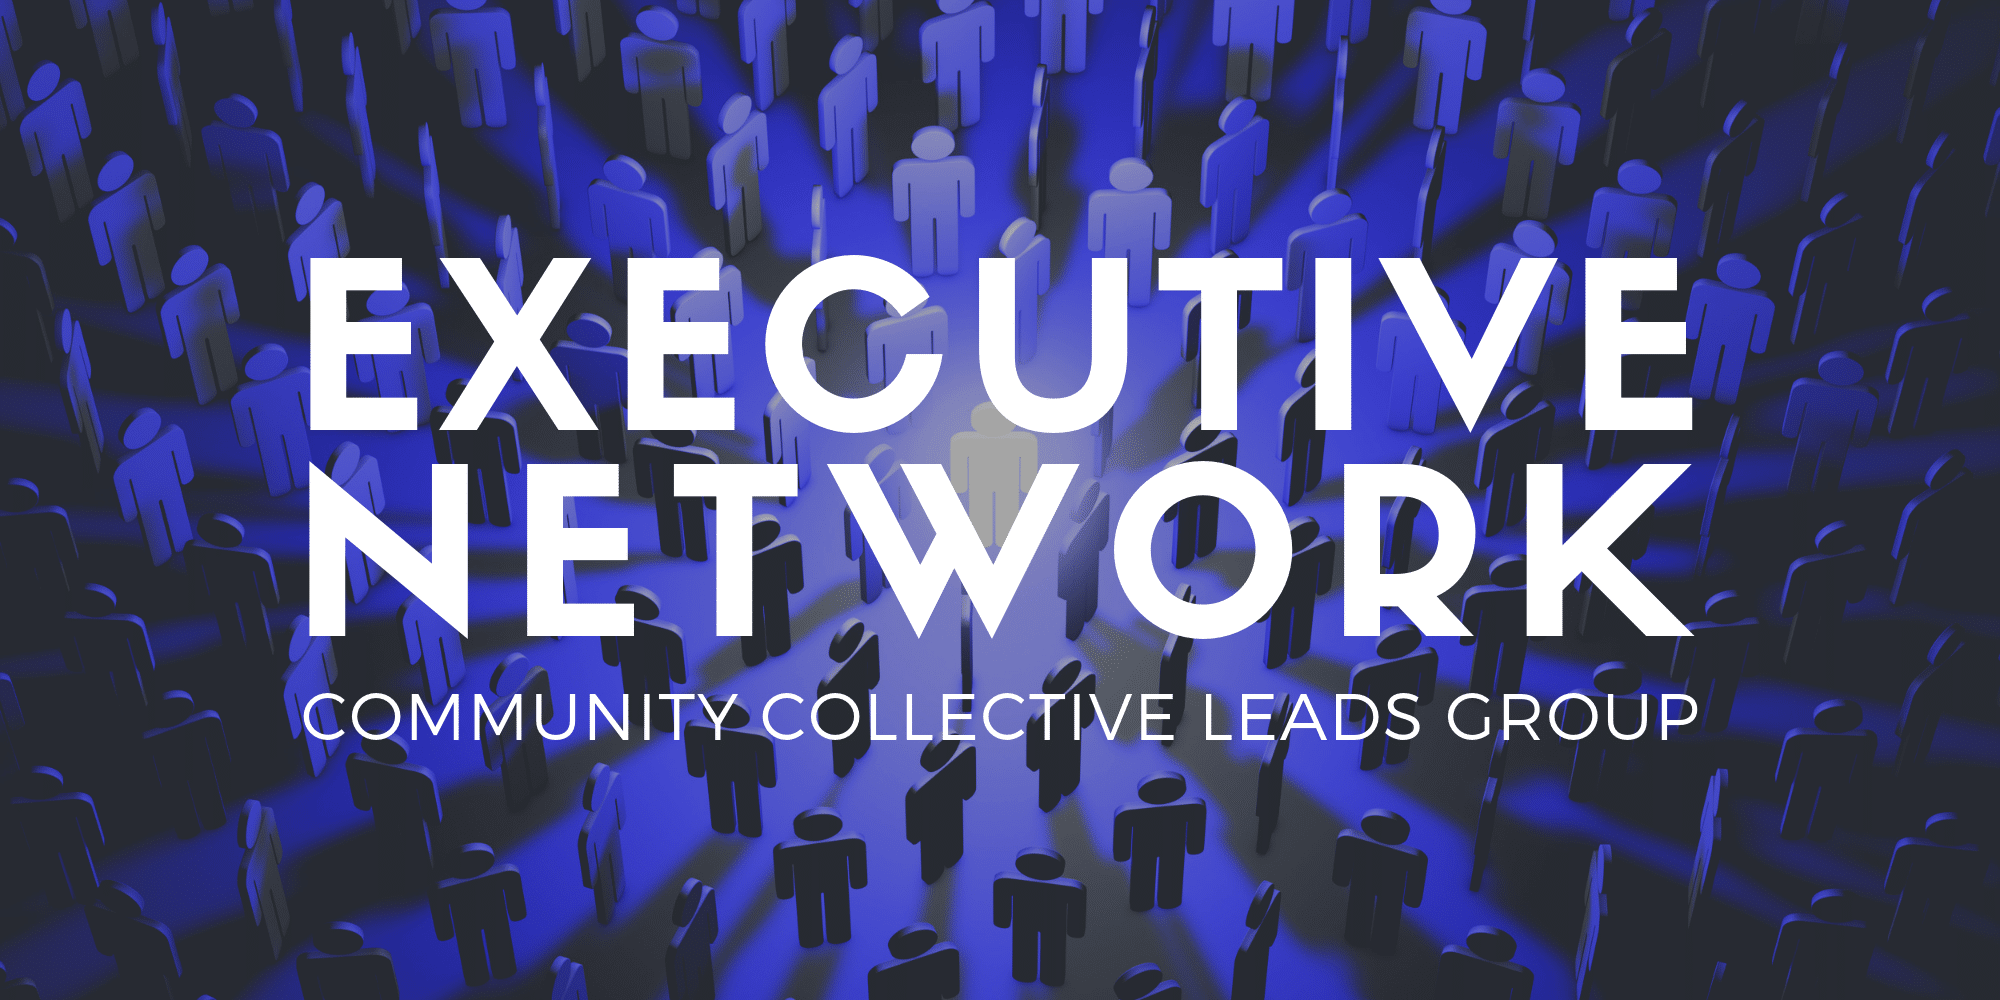 Community Collective Executive Network